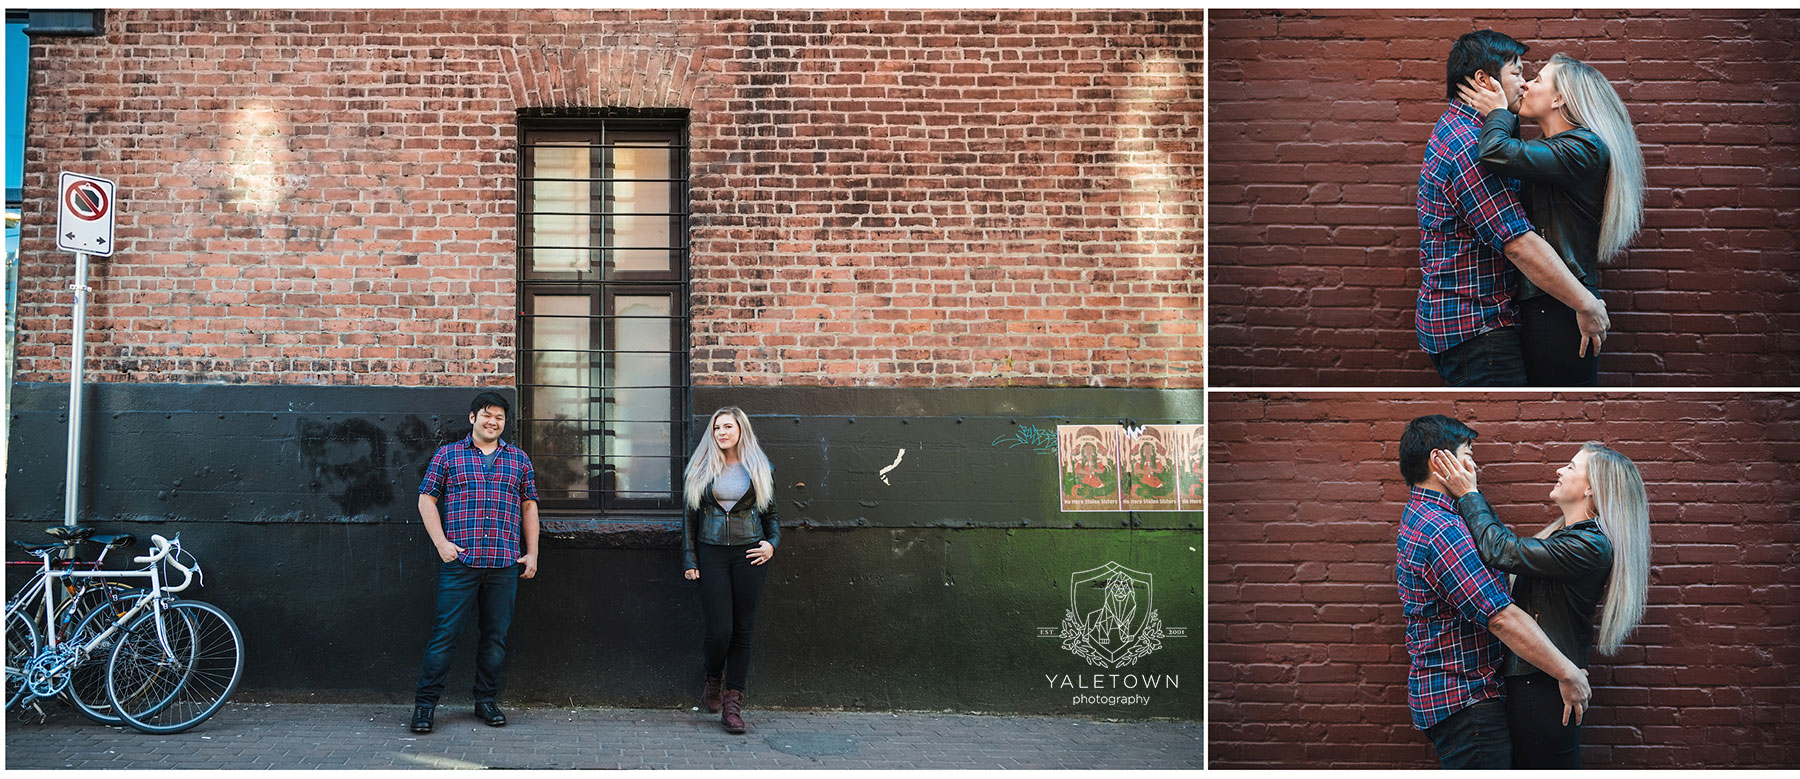 4-Yaletown-Photography-vancouver-urban-mural-engagement-photo (1).jpg